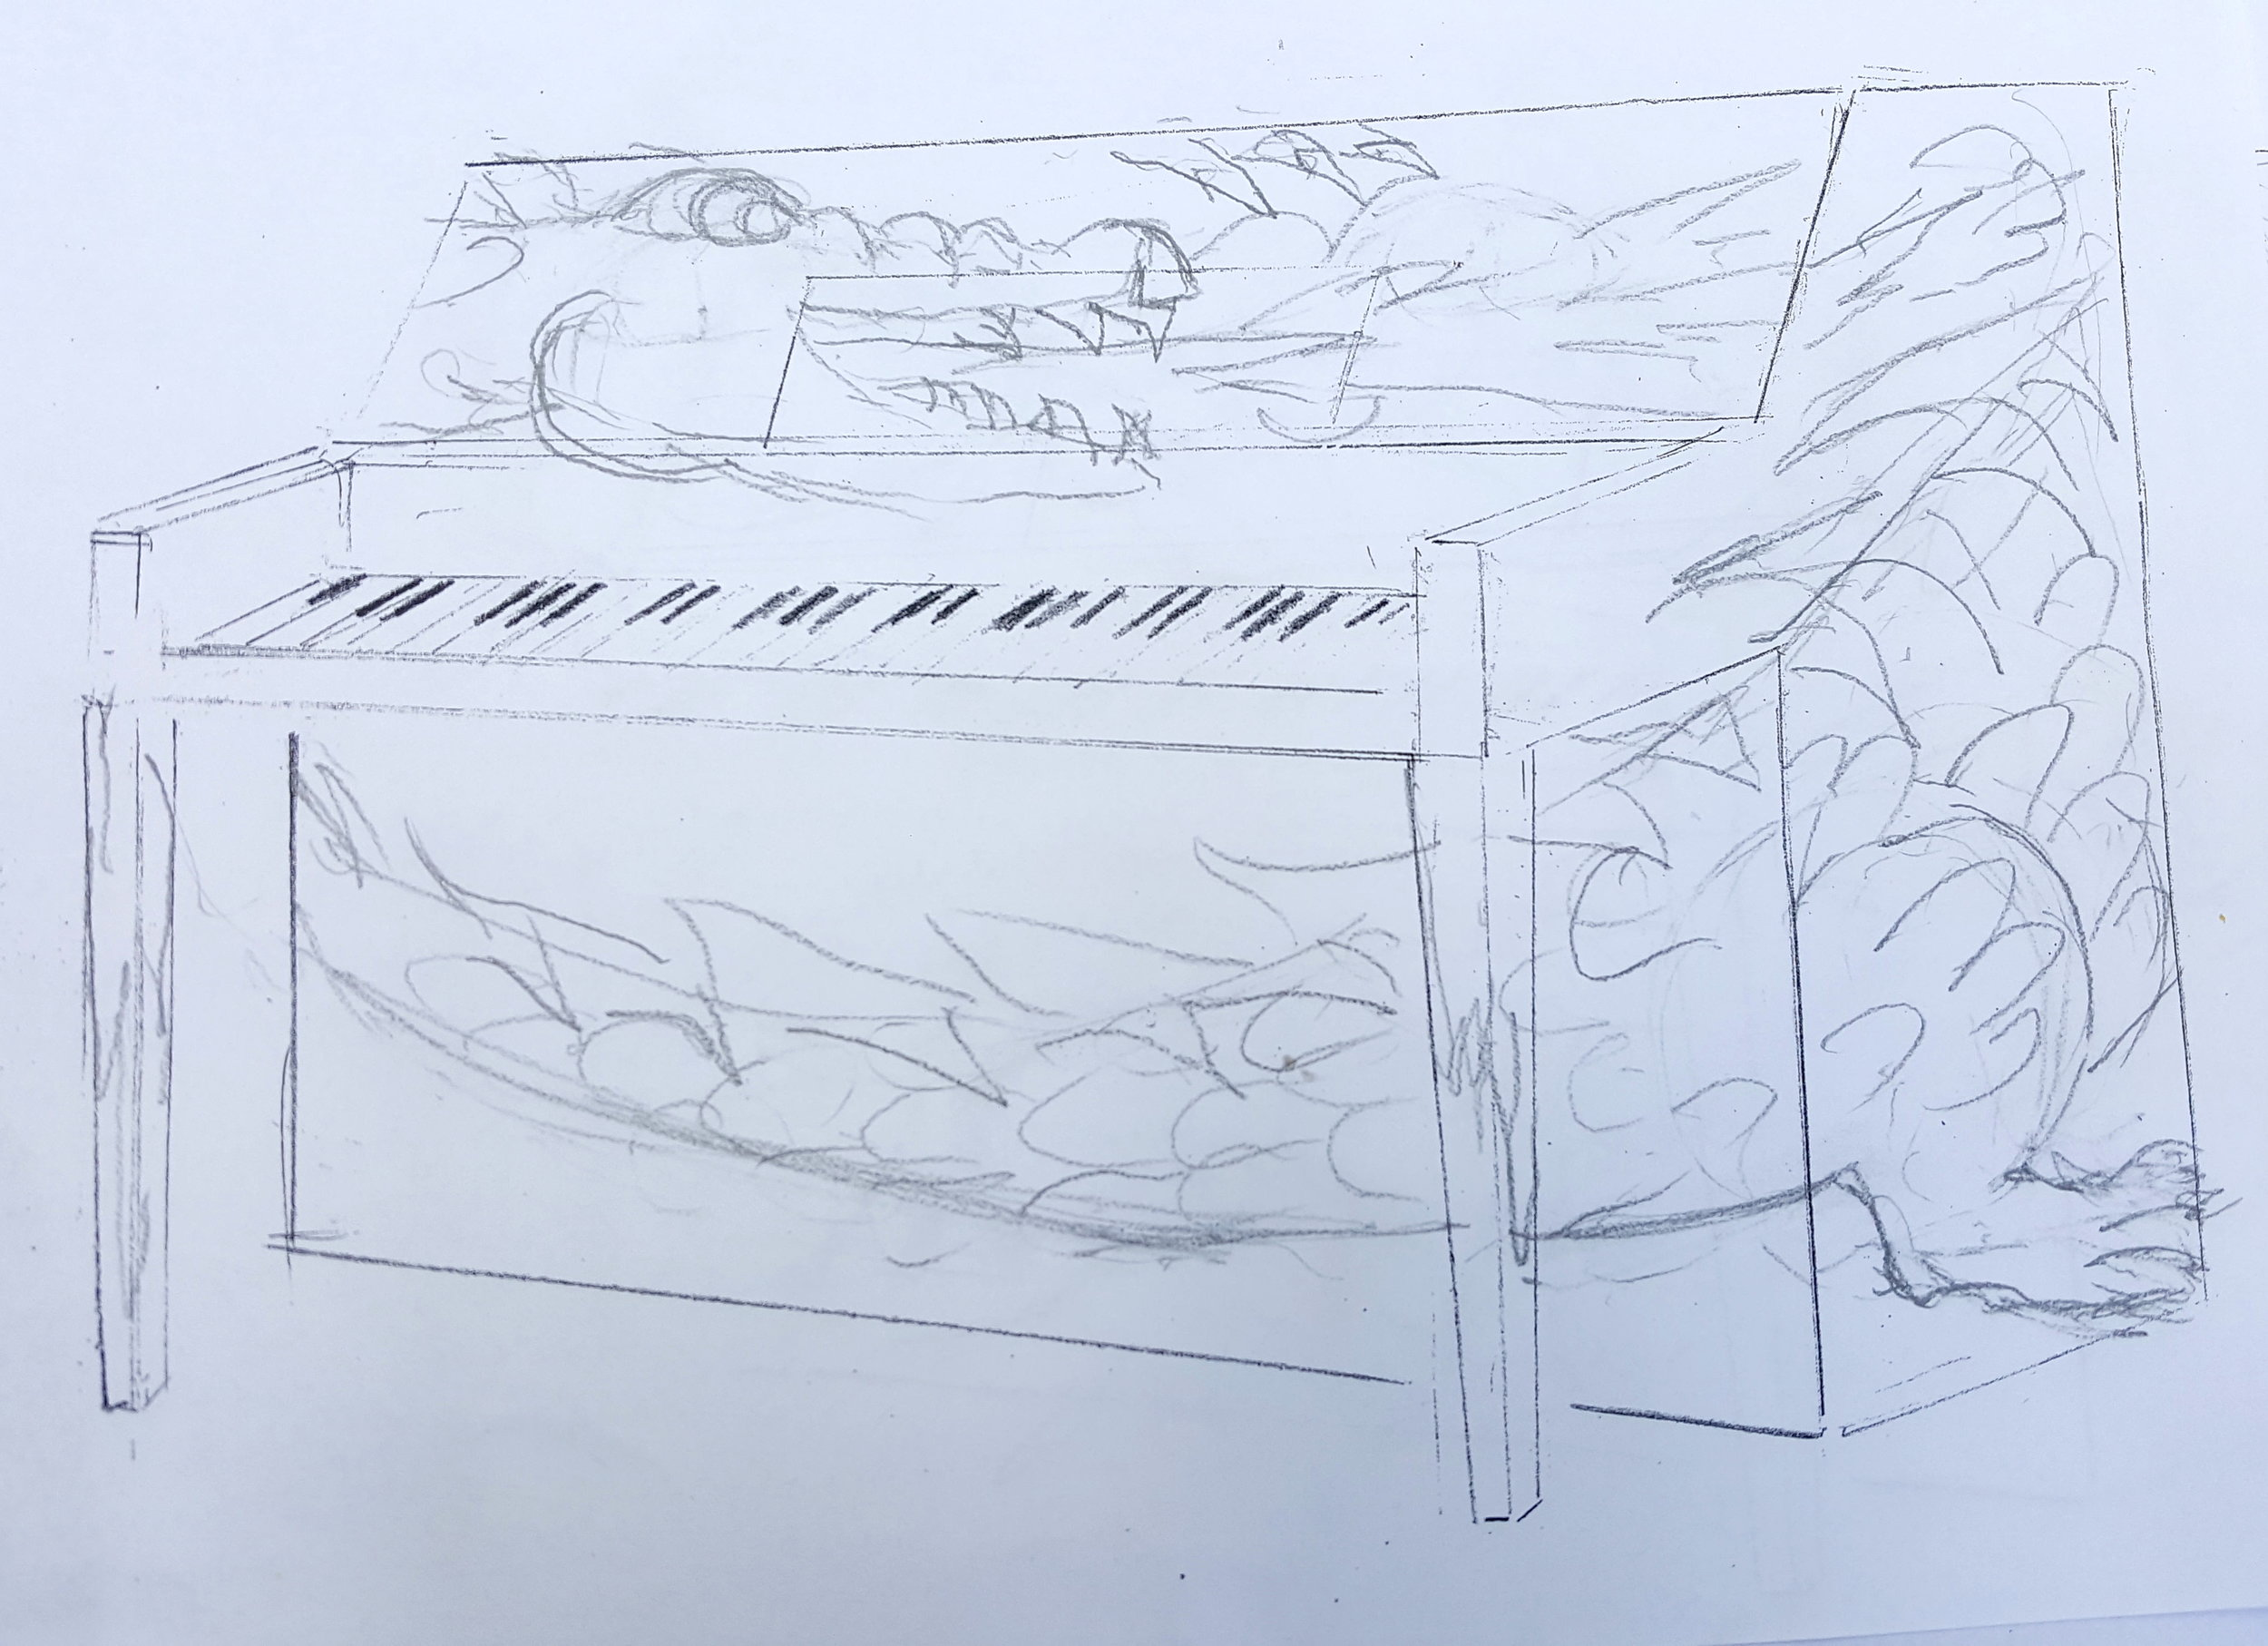 rendering by doug smith for the piano in ashford park in brookhaven ('Aragon').